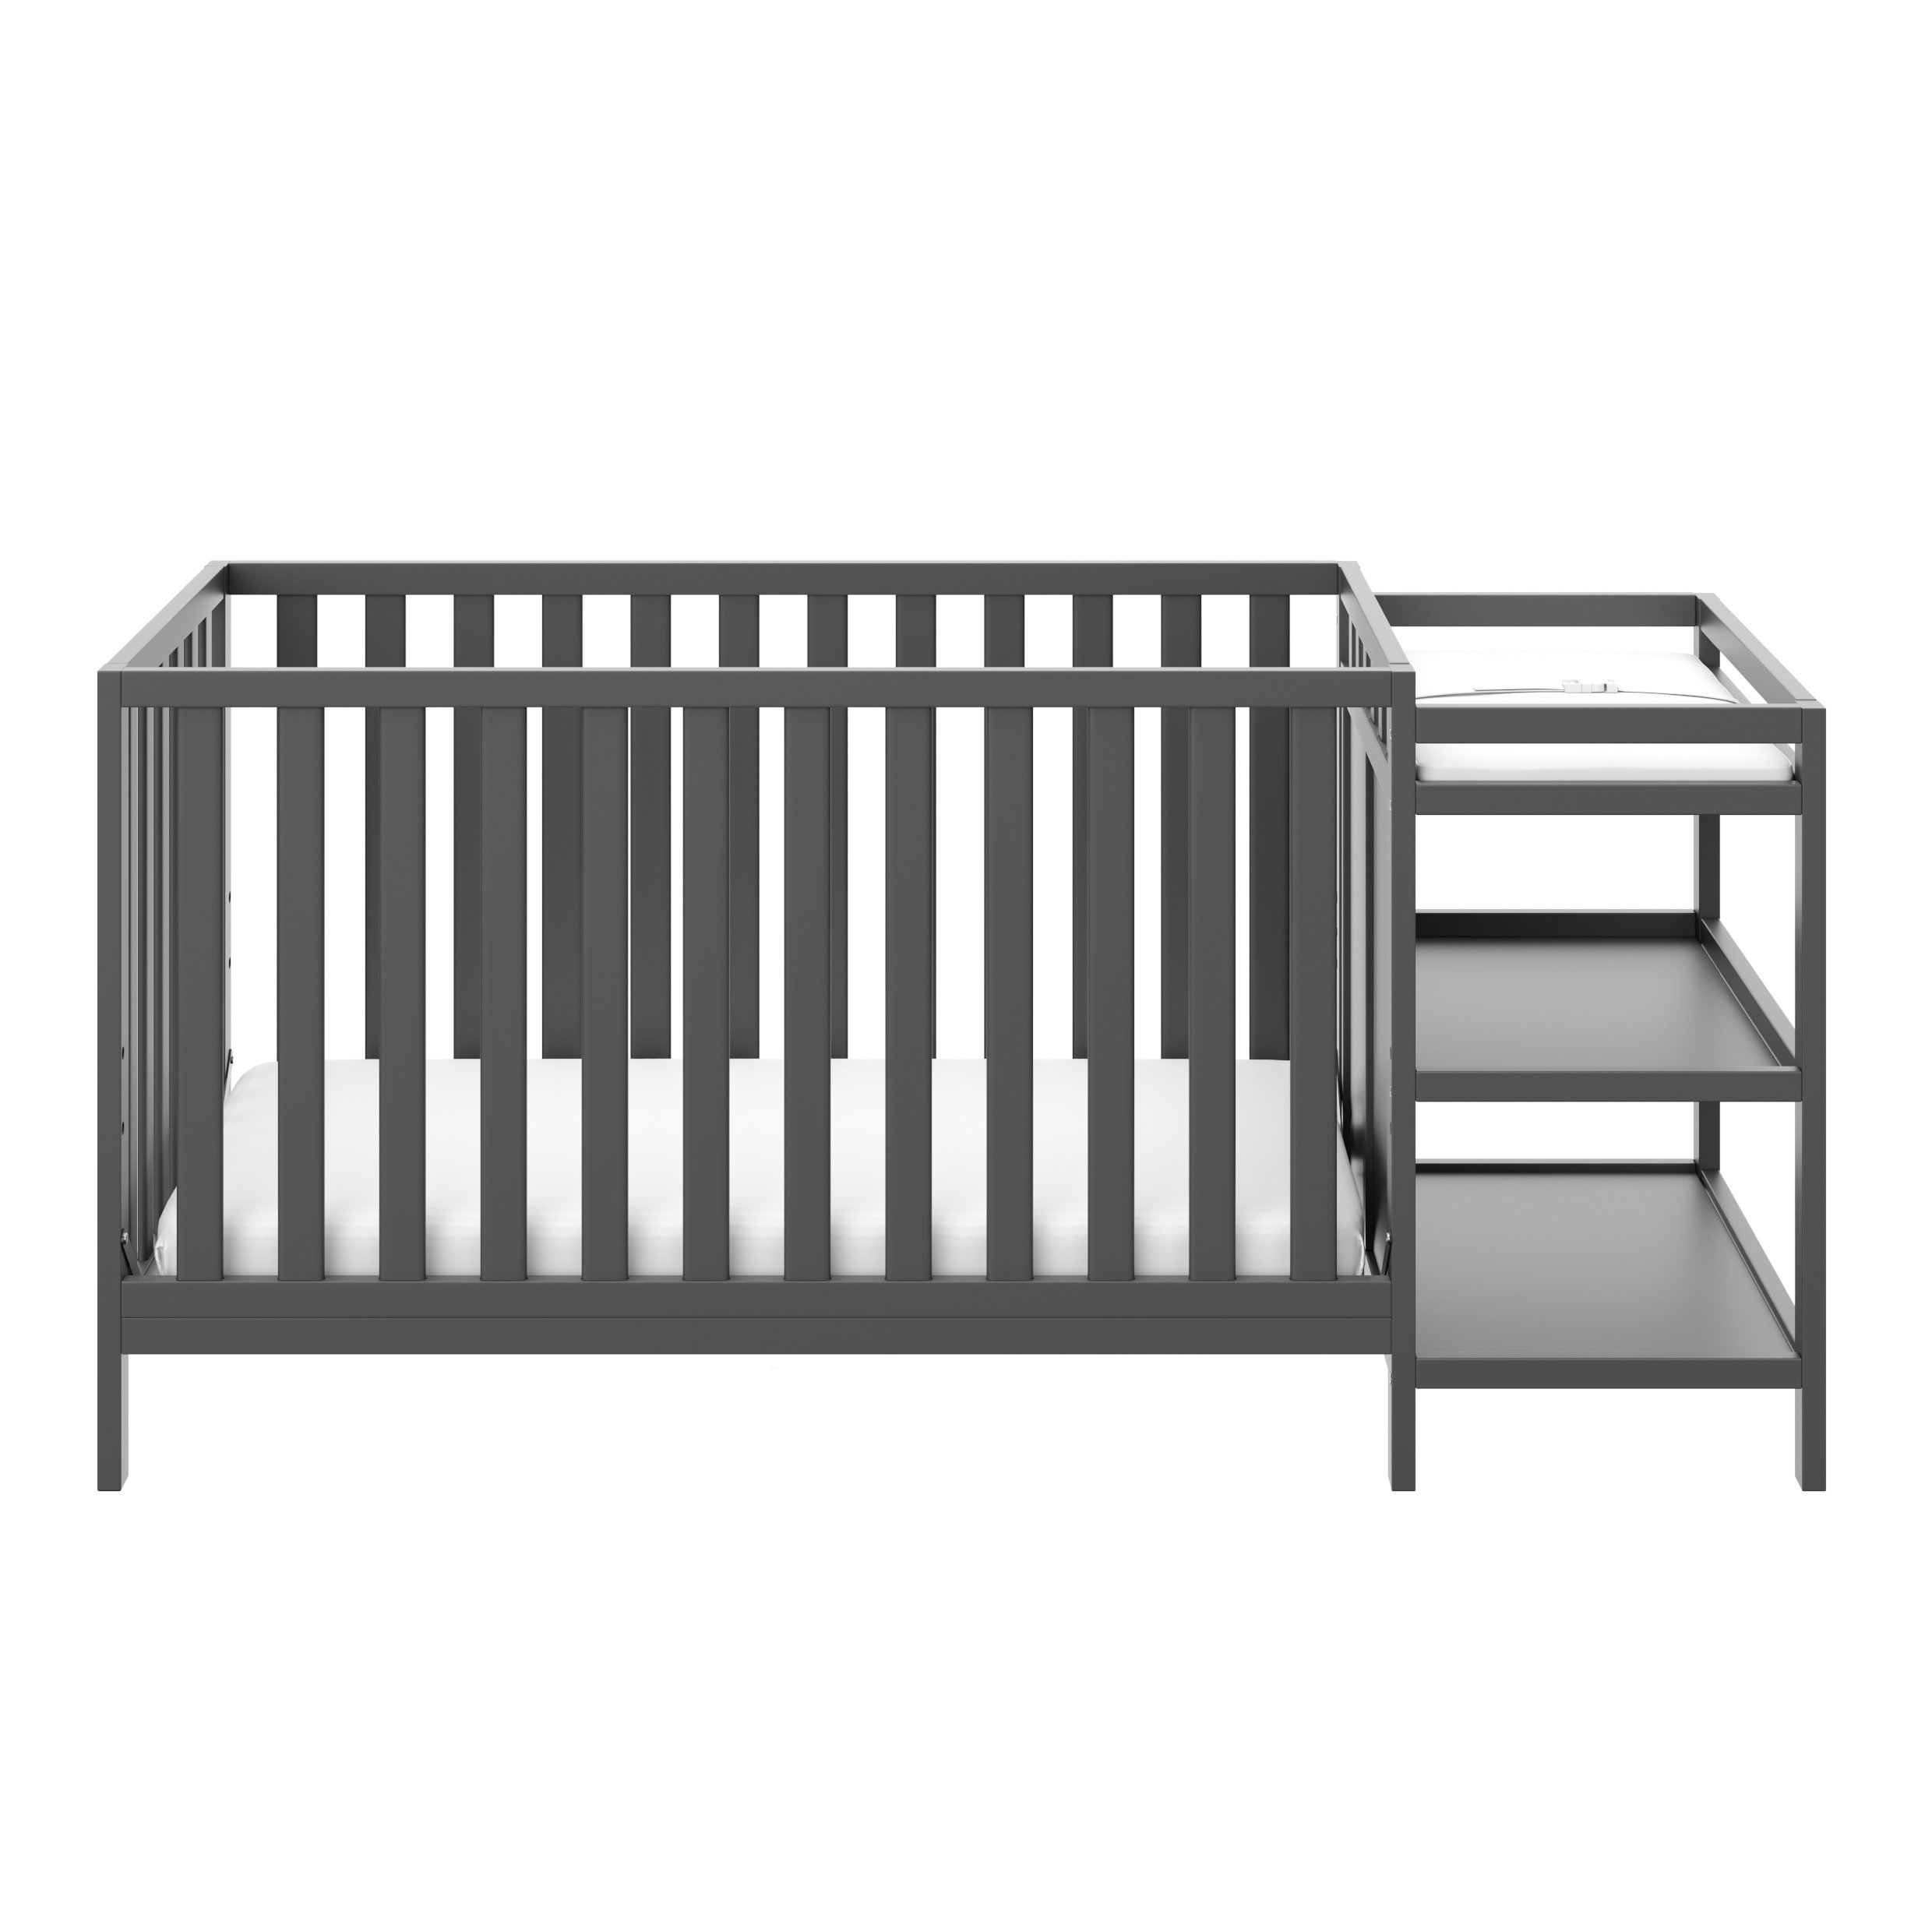 Storkcraft Pacific 4-in-1 Convertible Crib and Changer, Gray Easily Converts to Toddler Bed, Day Bed or Full Bed, 3 Position Adjustable Height Mattress by Storkcraft